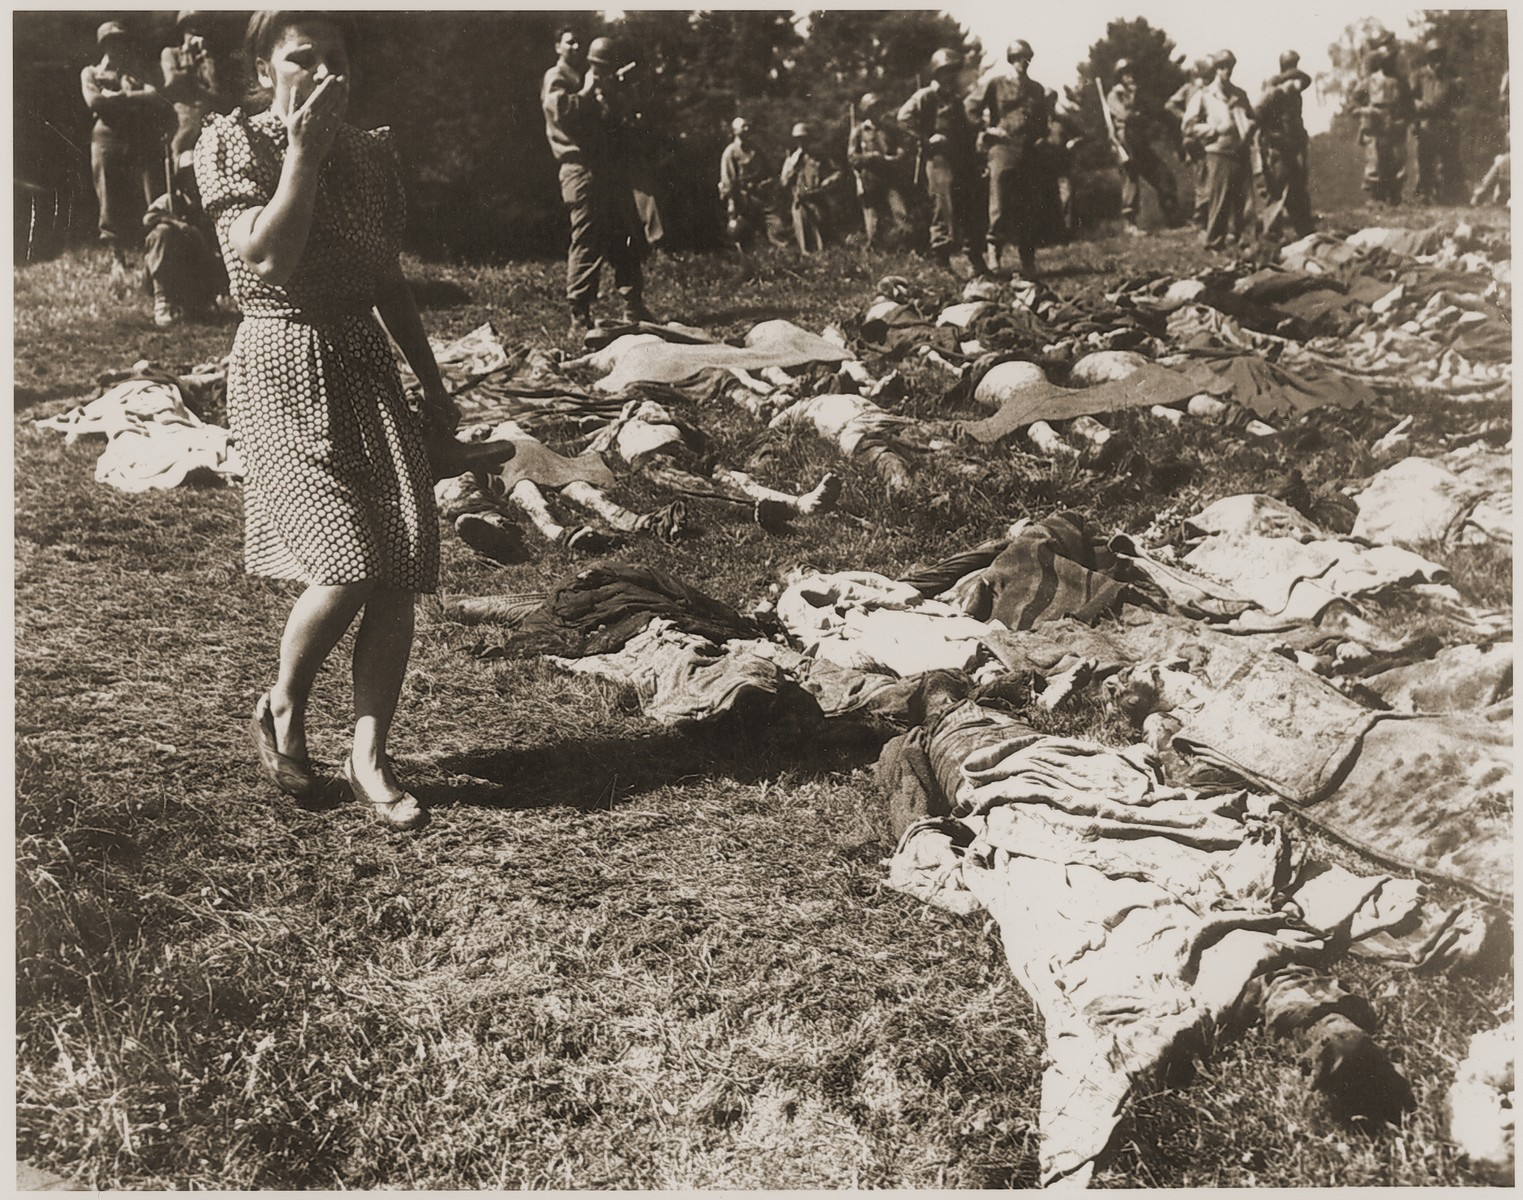 Under the supervision of American troops, a German woman is forced to walk among the corpses of prisoners exhumed from a mass grave near Nammering.